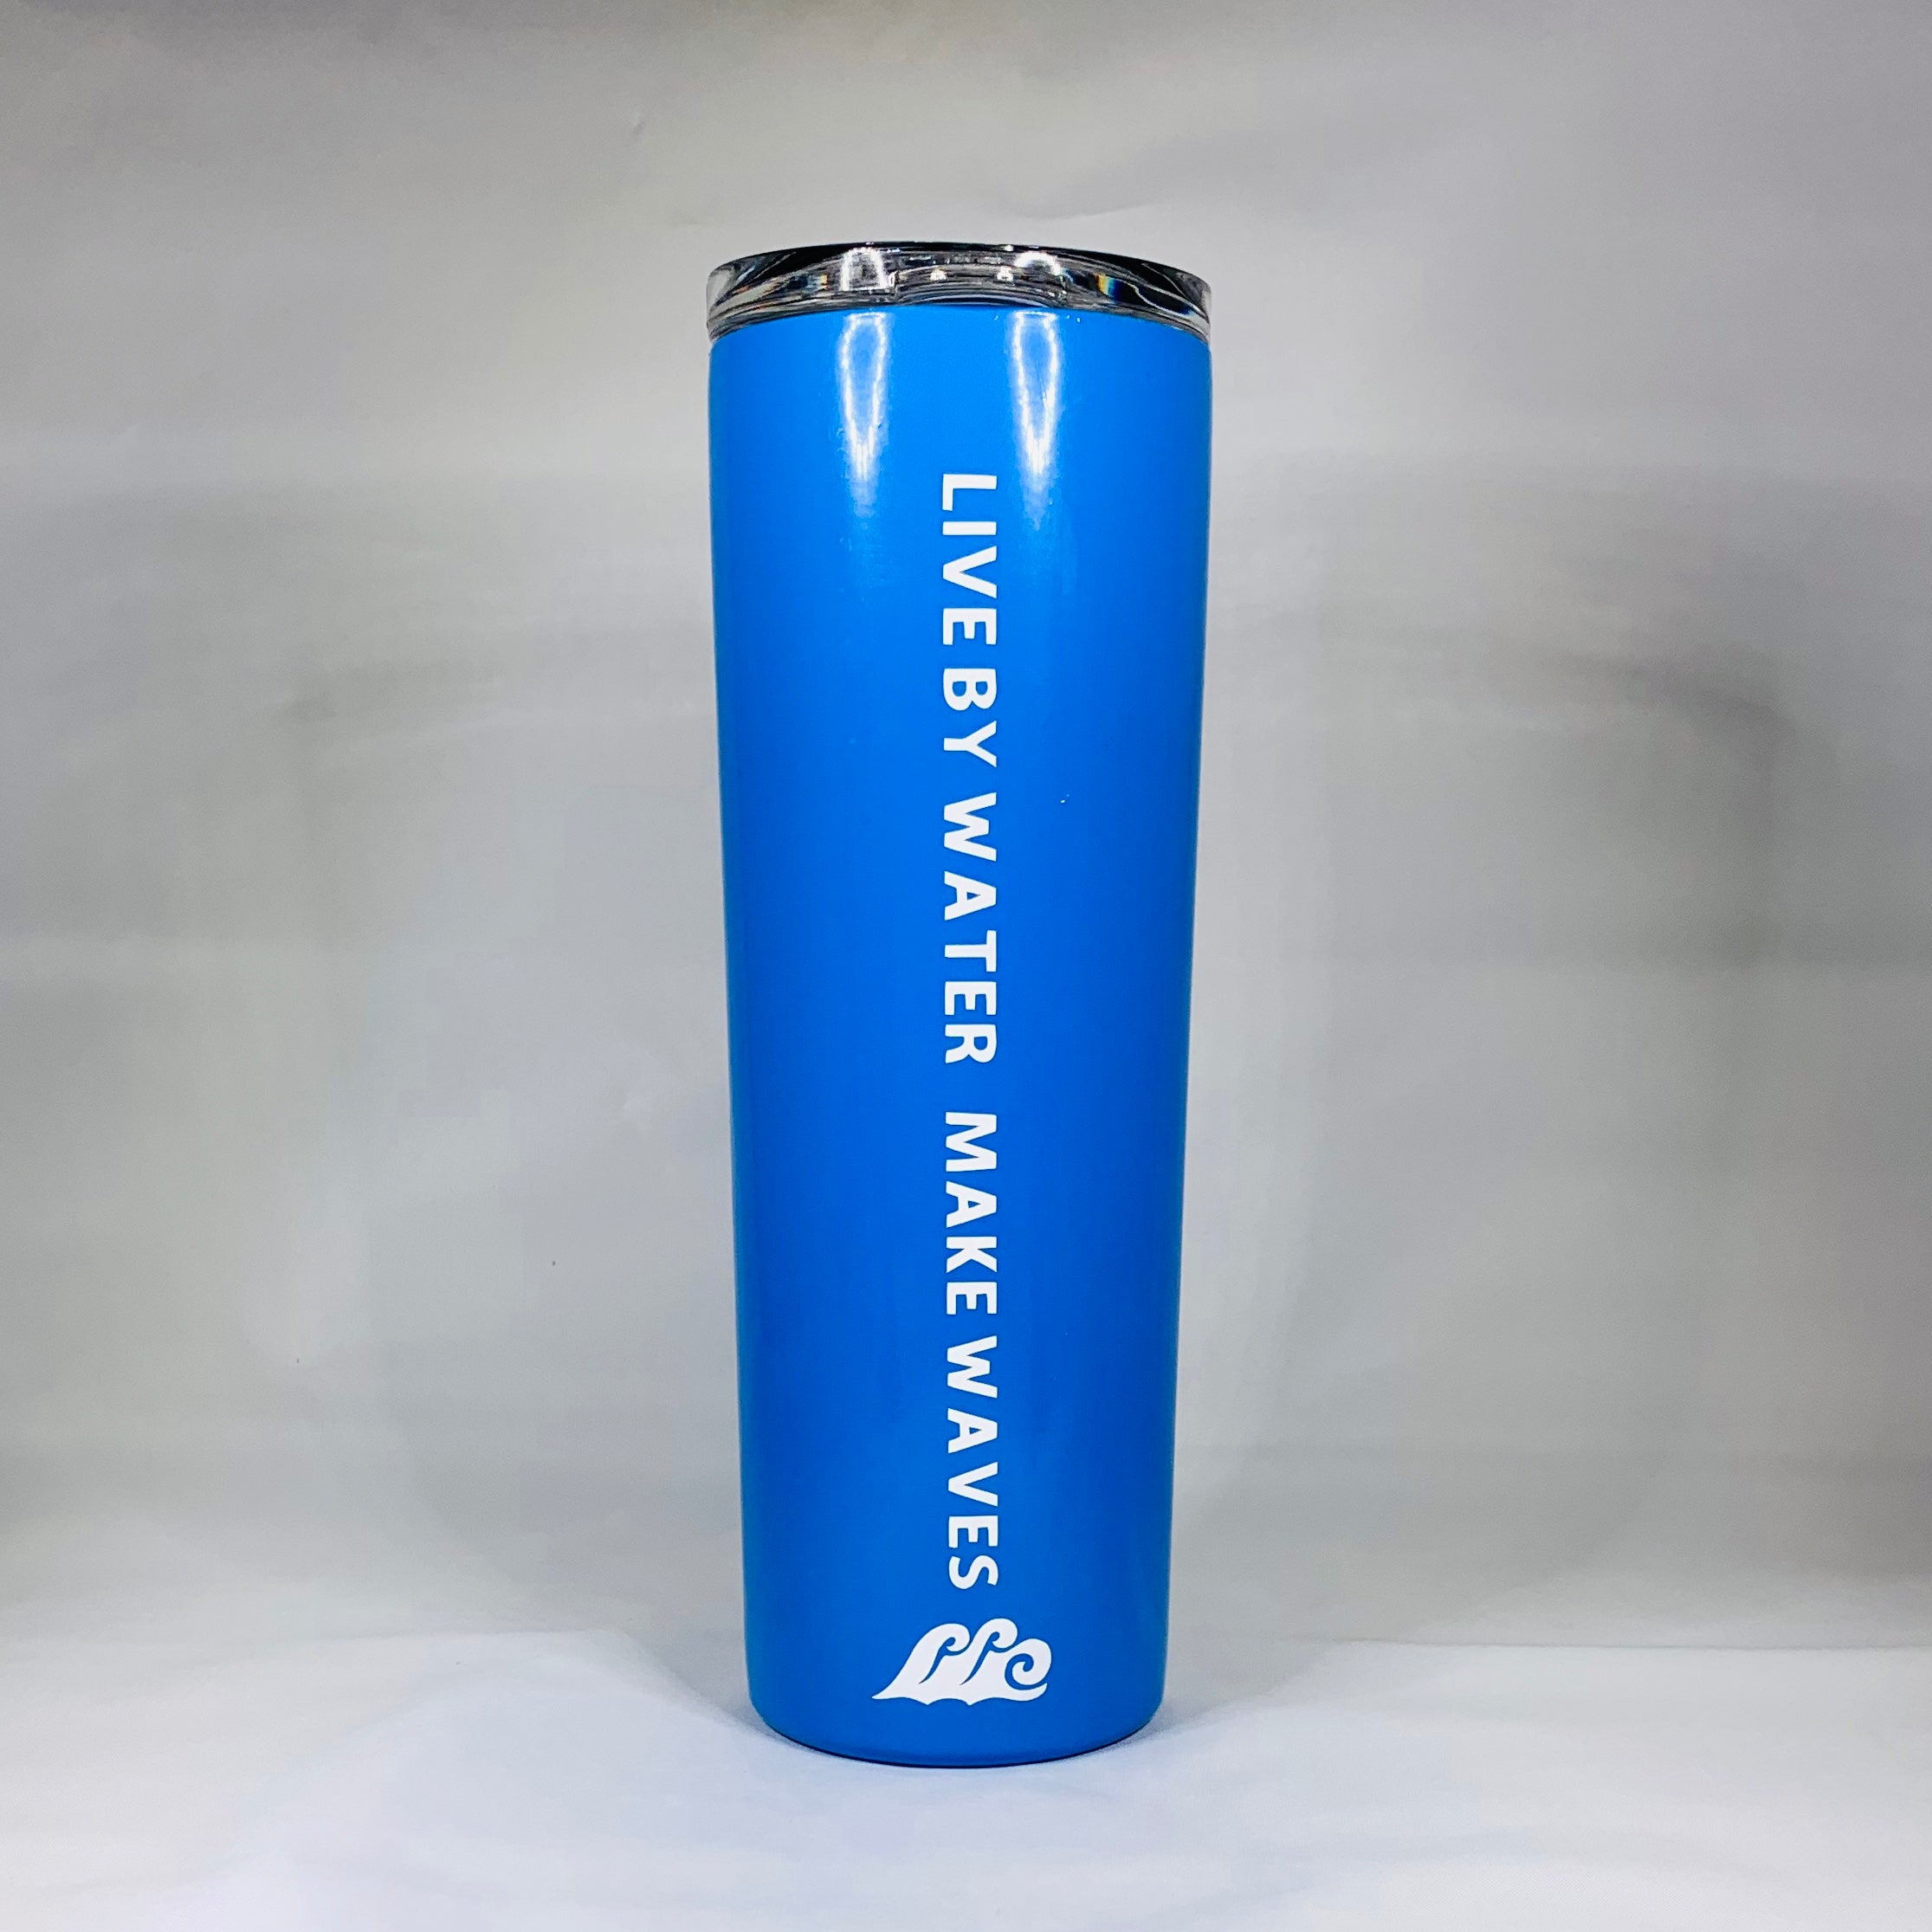 Tall Tumbler with LBWMW & wave logo